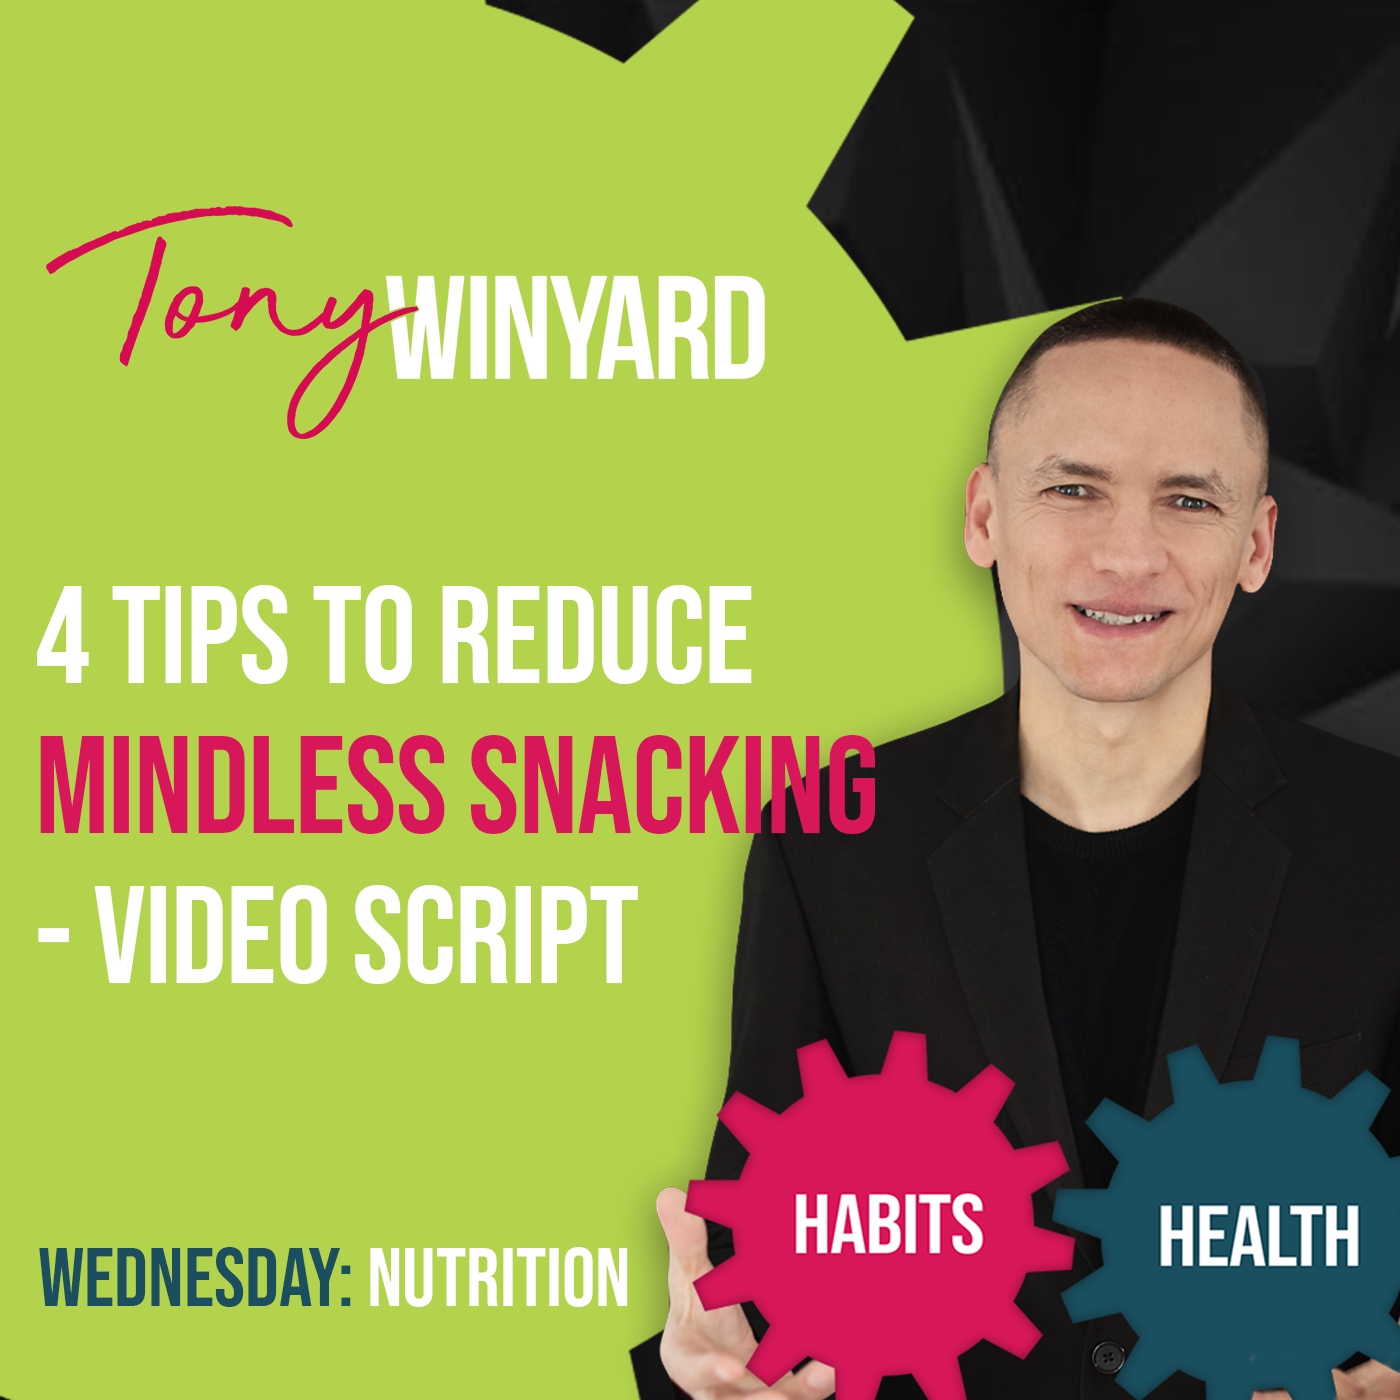 4 Tips to Reduce Mindless Snacking